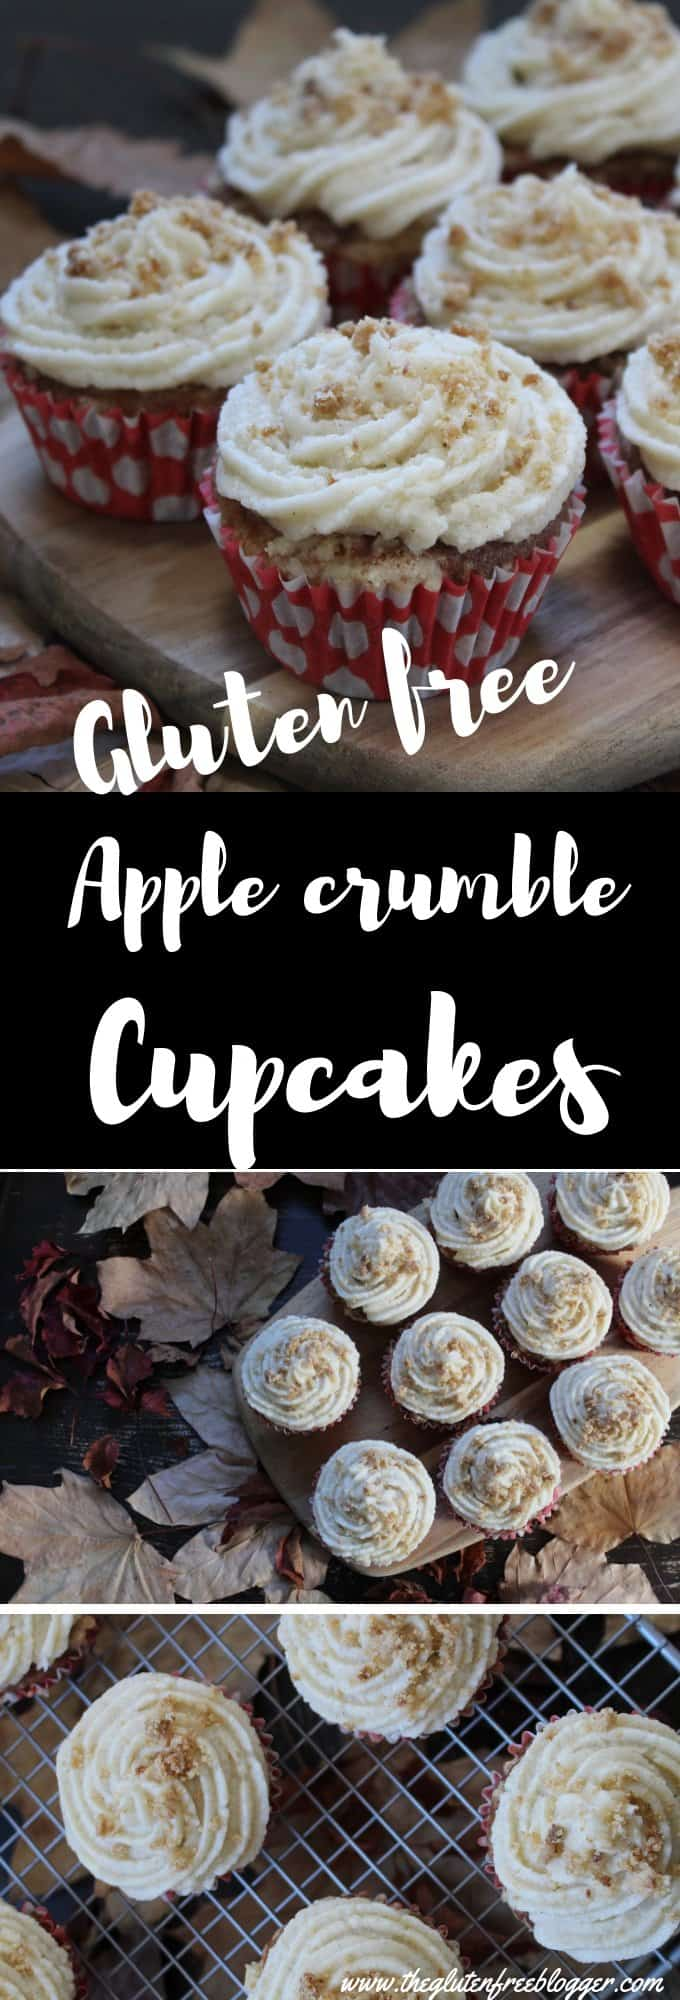 Gluten free apple crumble cupcakes recipe - coeliac - gluten free recipe - cupcakes - frosting - buttercream